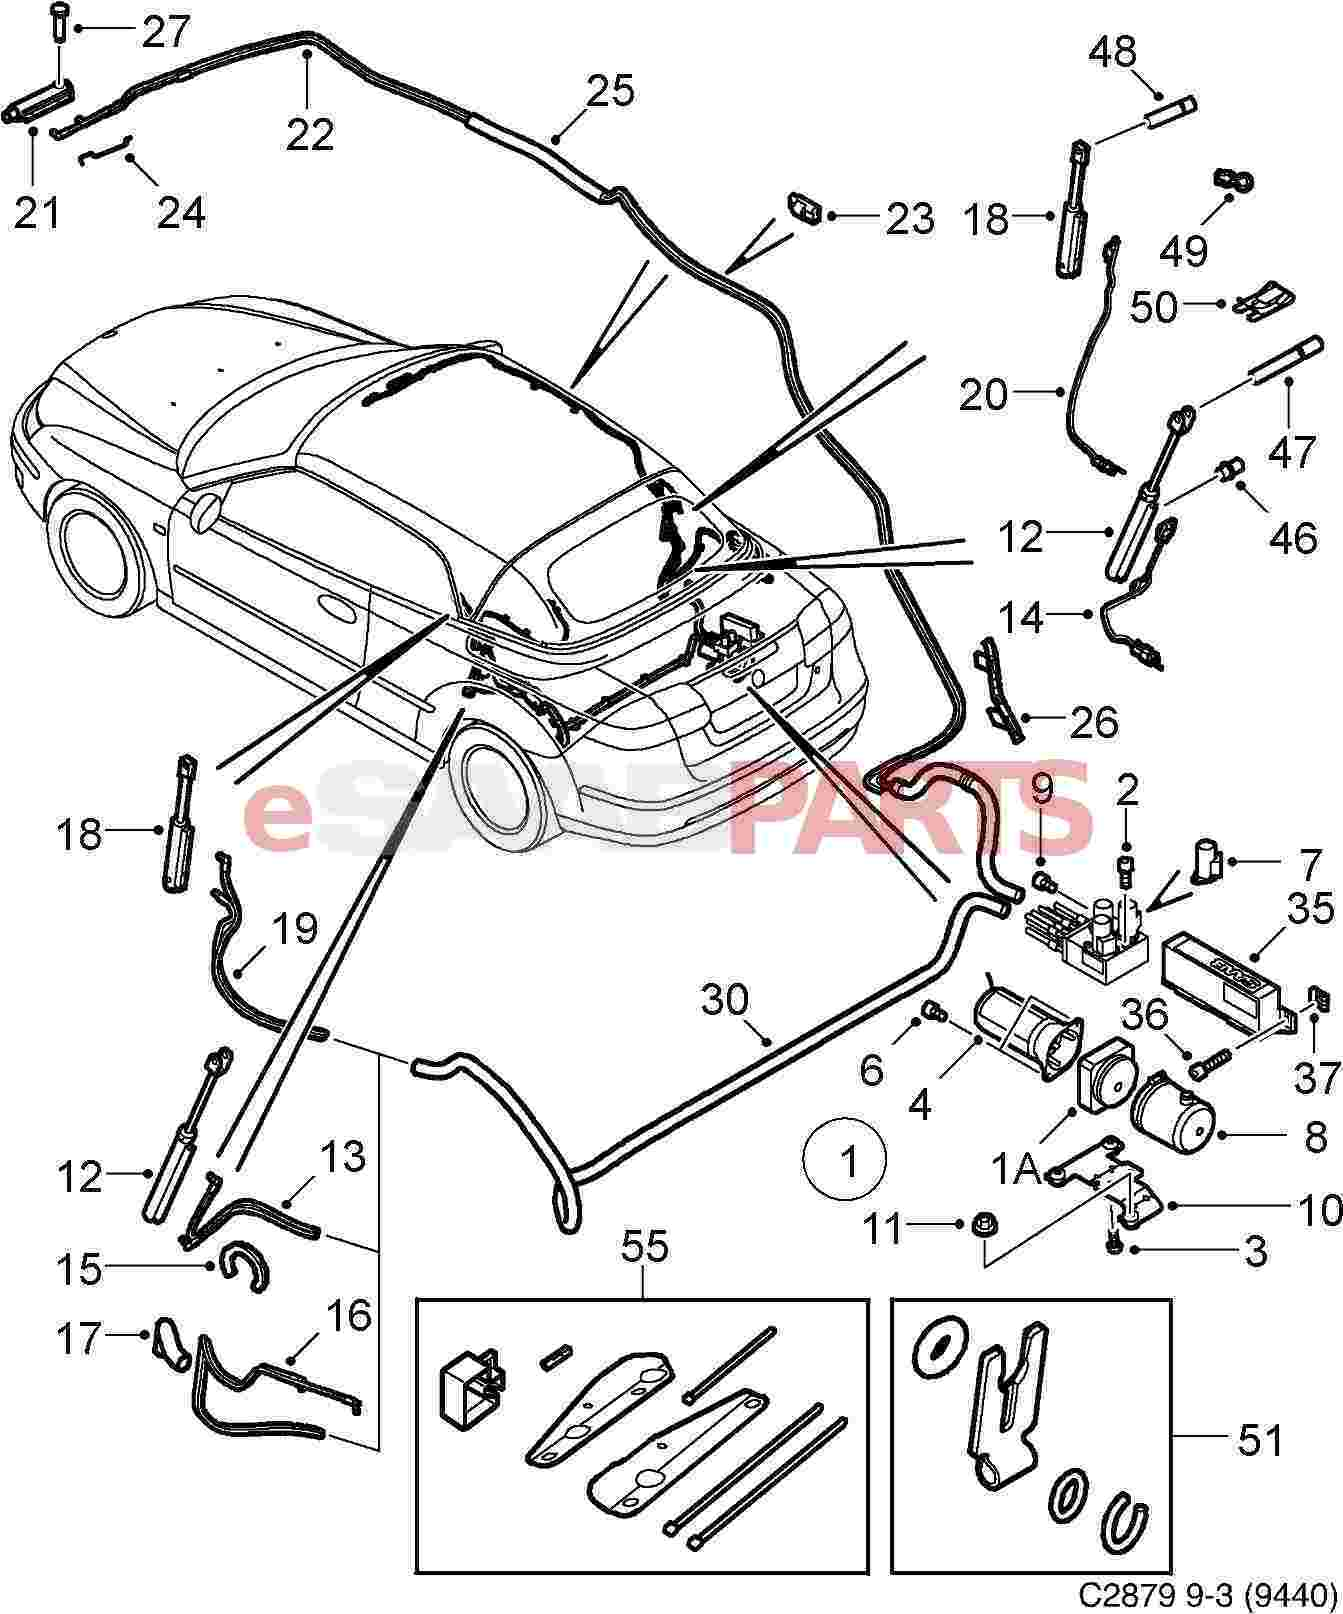 1999 saab 9 3 wiring diagram blank probability tree template 2003 convertible parts auto